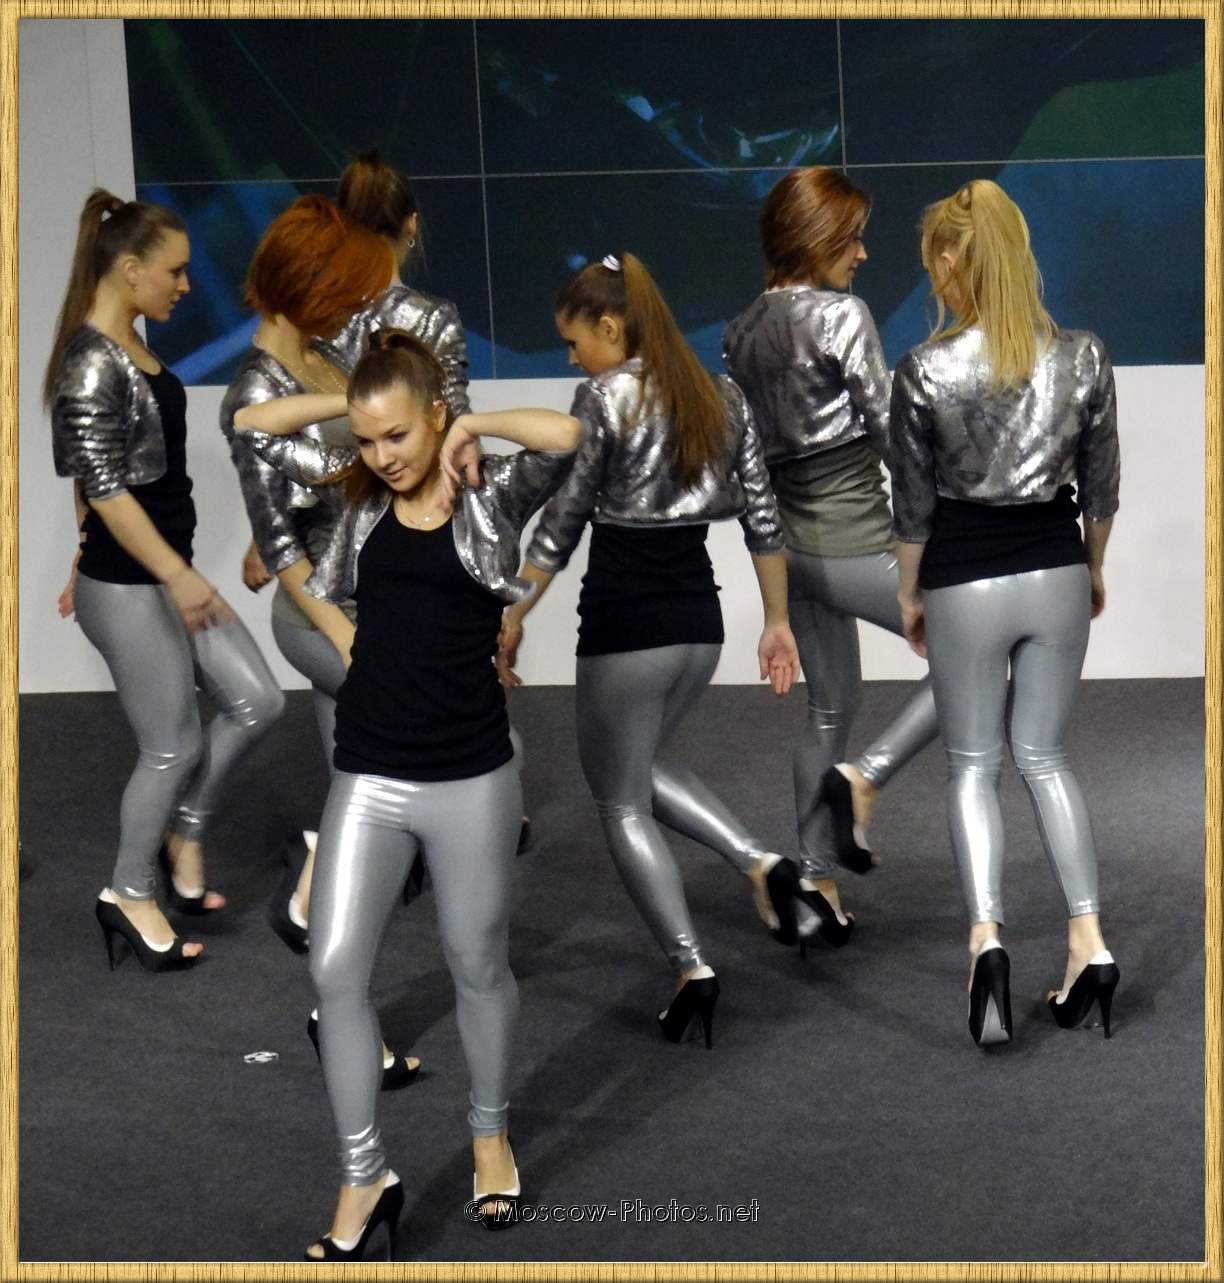 Girls dancing in silver leggings